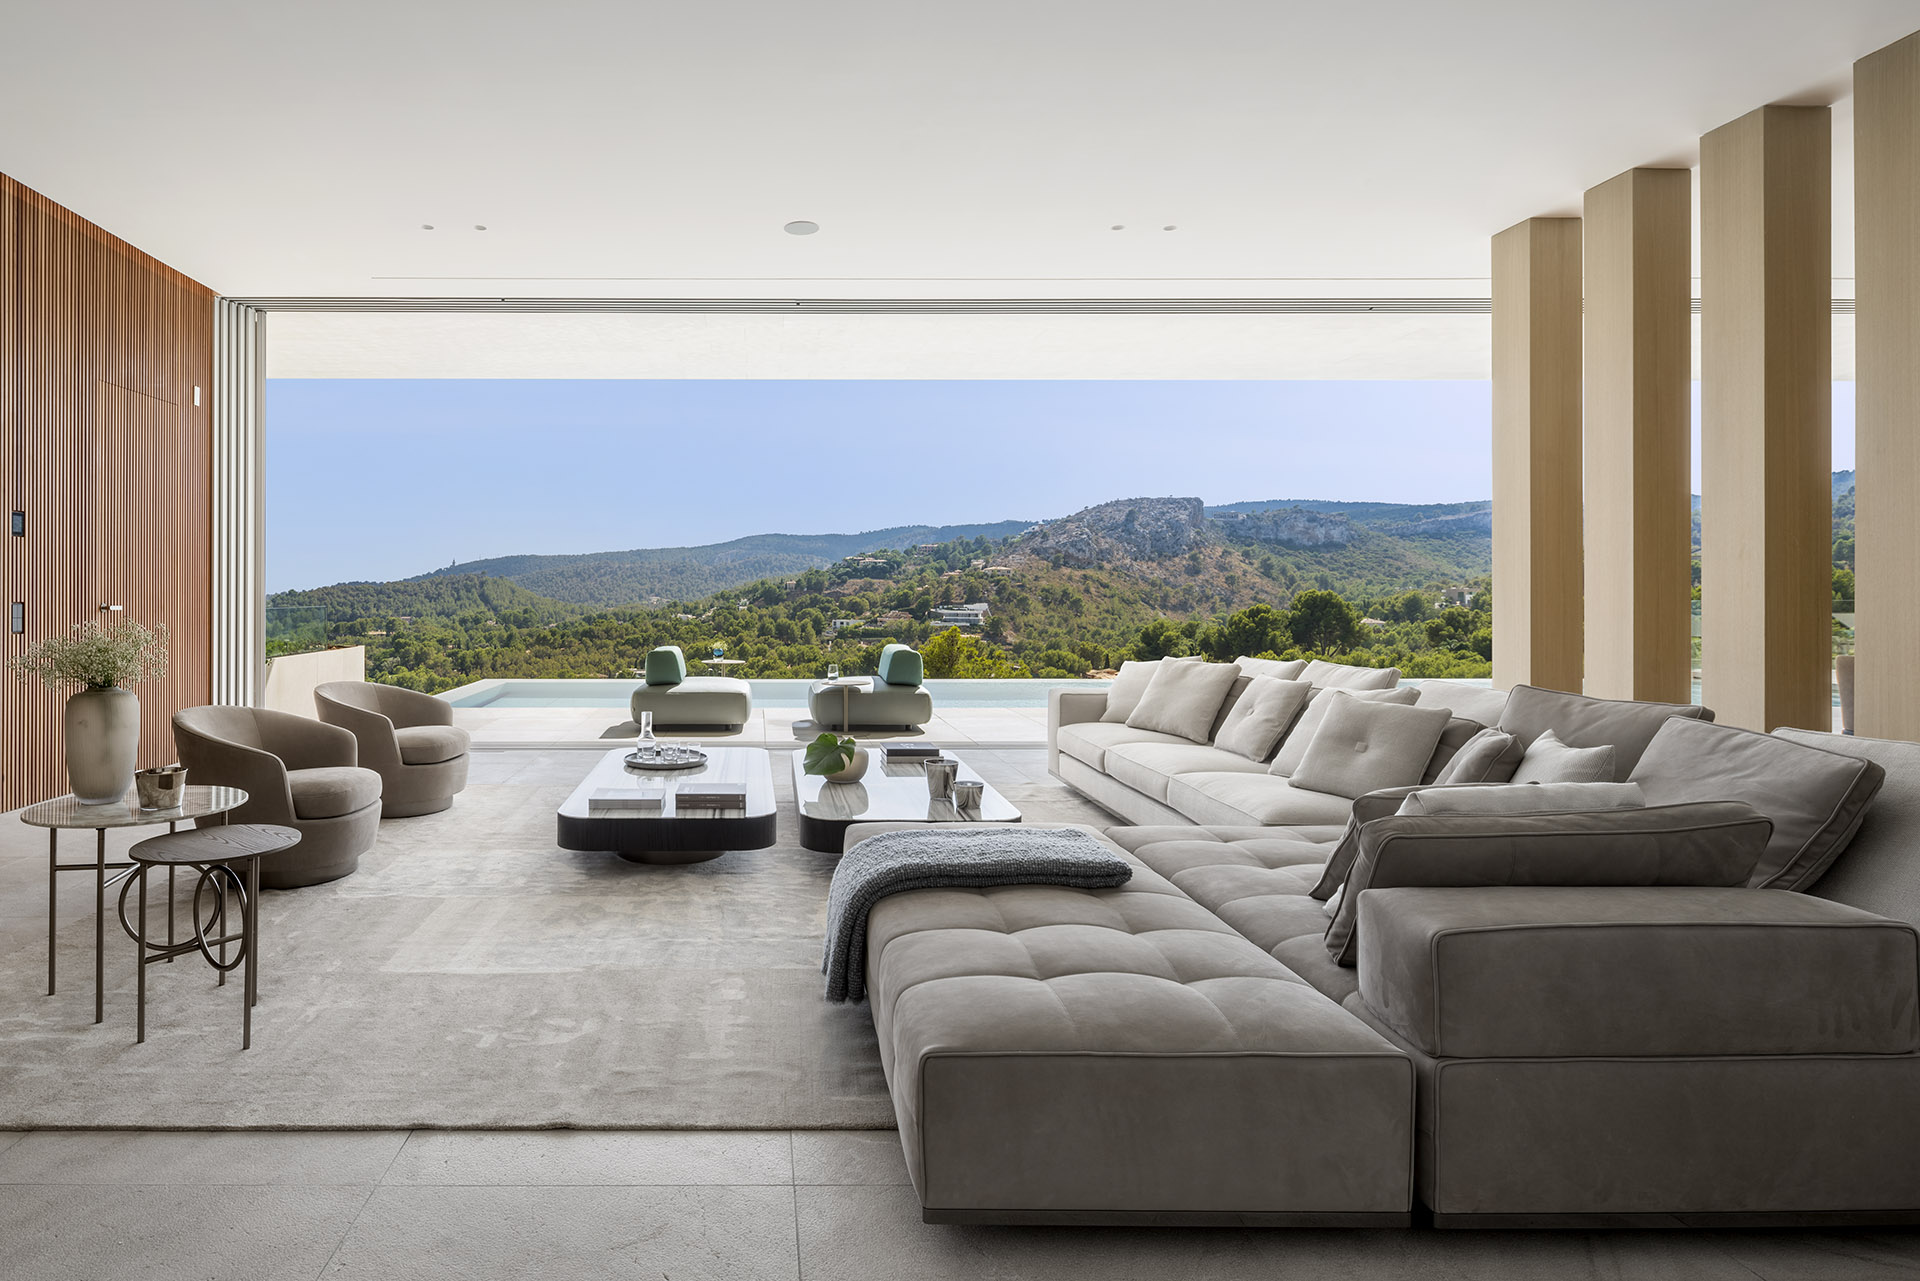 M16 Son Vida | Terraza Balear interior design project in Mallorca